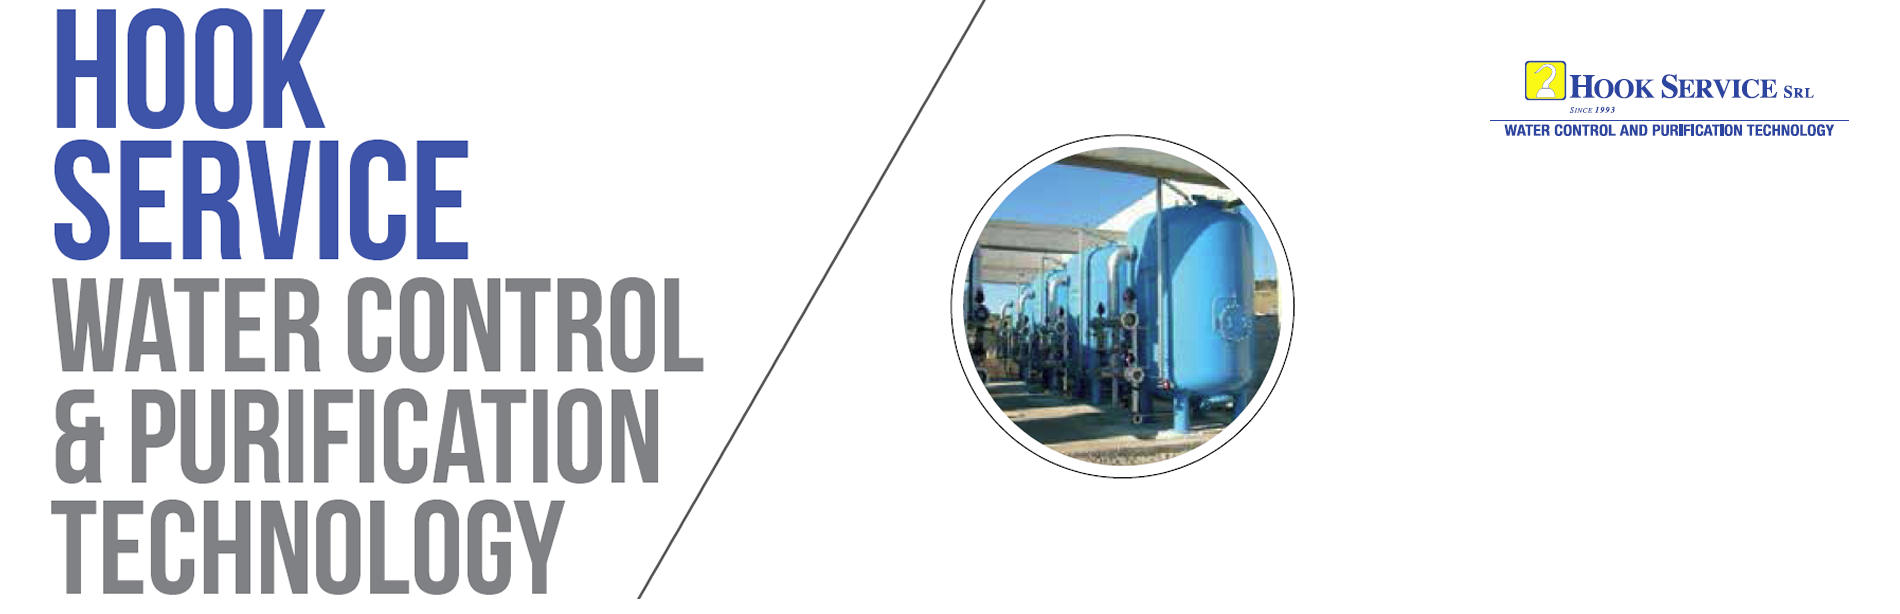 HOOK SERVICE WATER CONTROL & PURIFICATION TECHNOLOGY